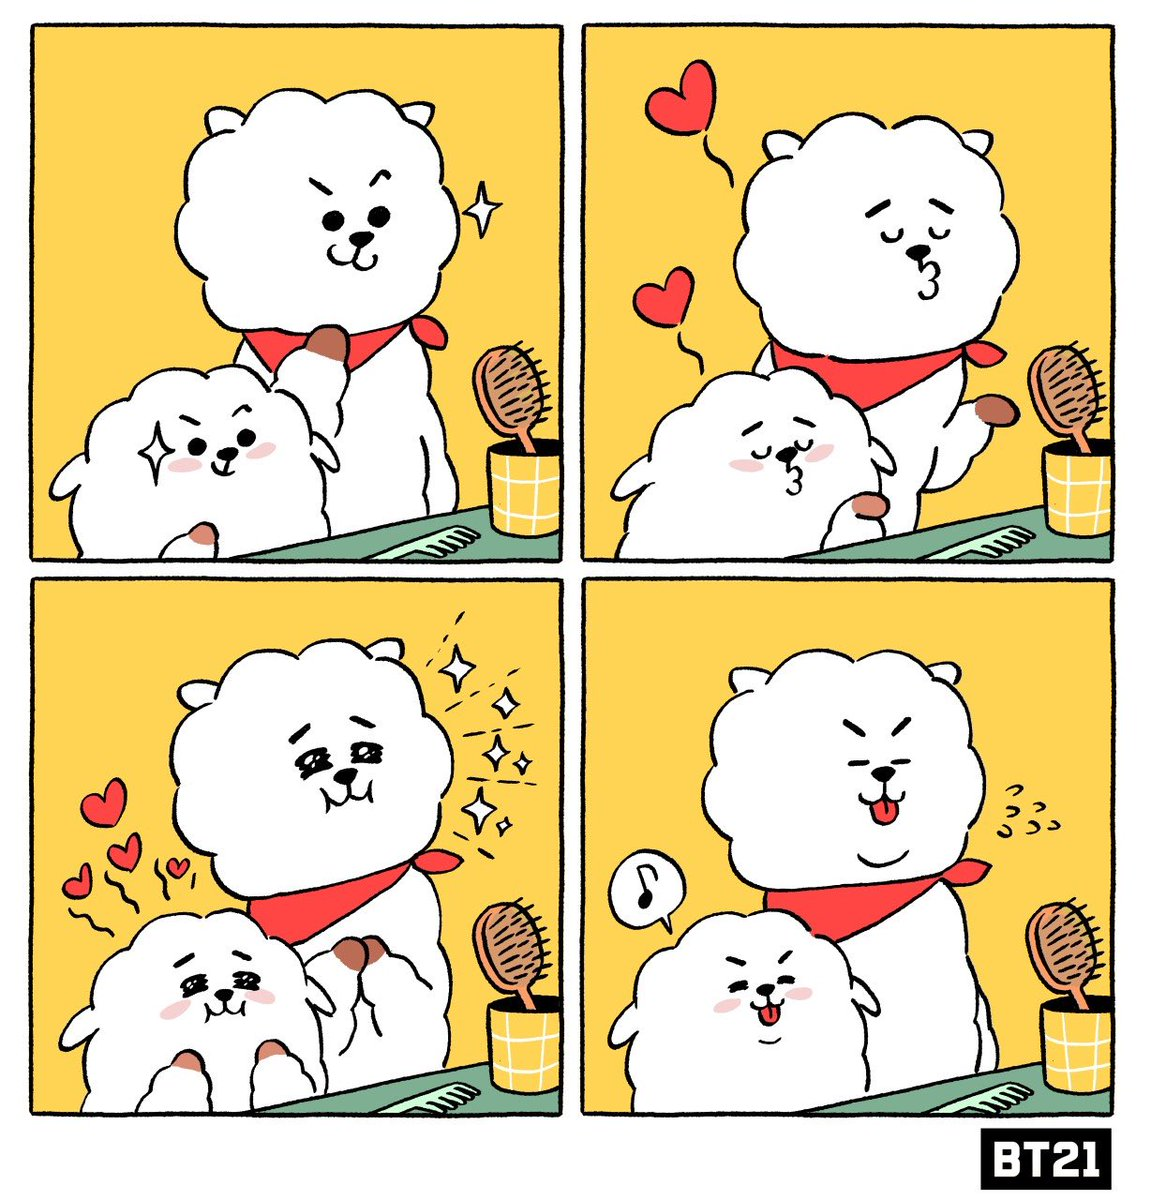 Two peas in a pod 😶😶 #CopyAndPaste #Before #GoingOut #Sibling #ChildhoodMemories #RJ #RK #BT21